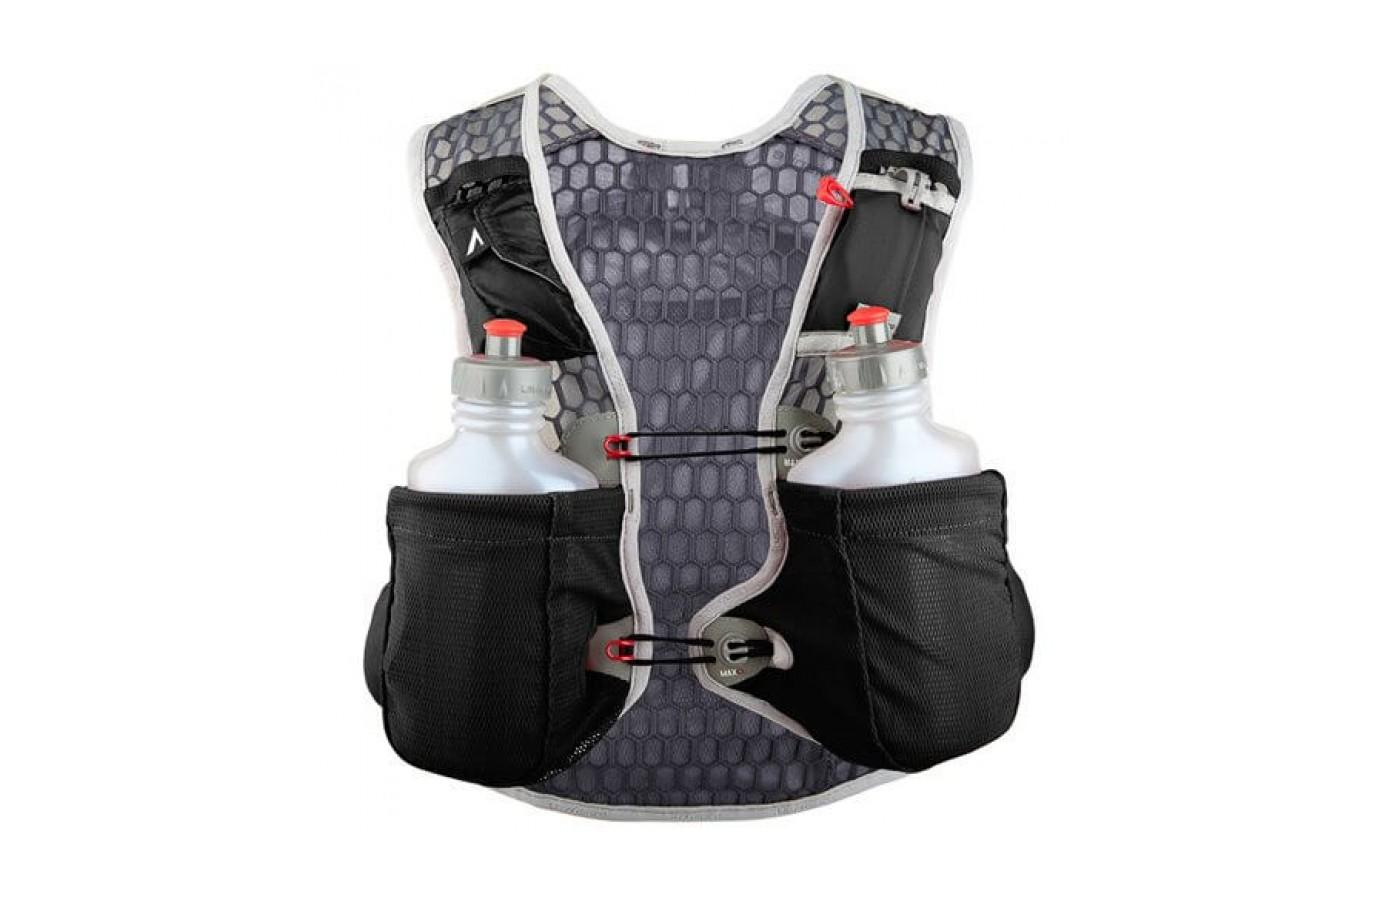 2 UltraFlask 550 water bottles are included with the UltrAspire Alpha 3.0 Vest.